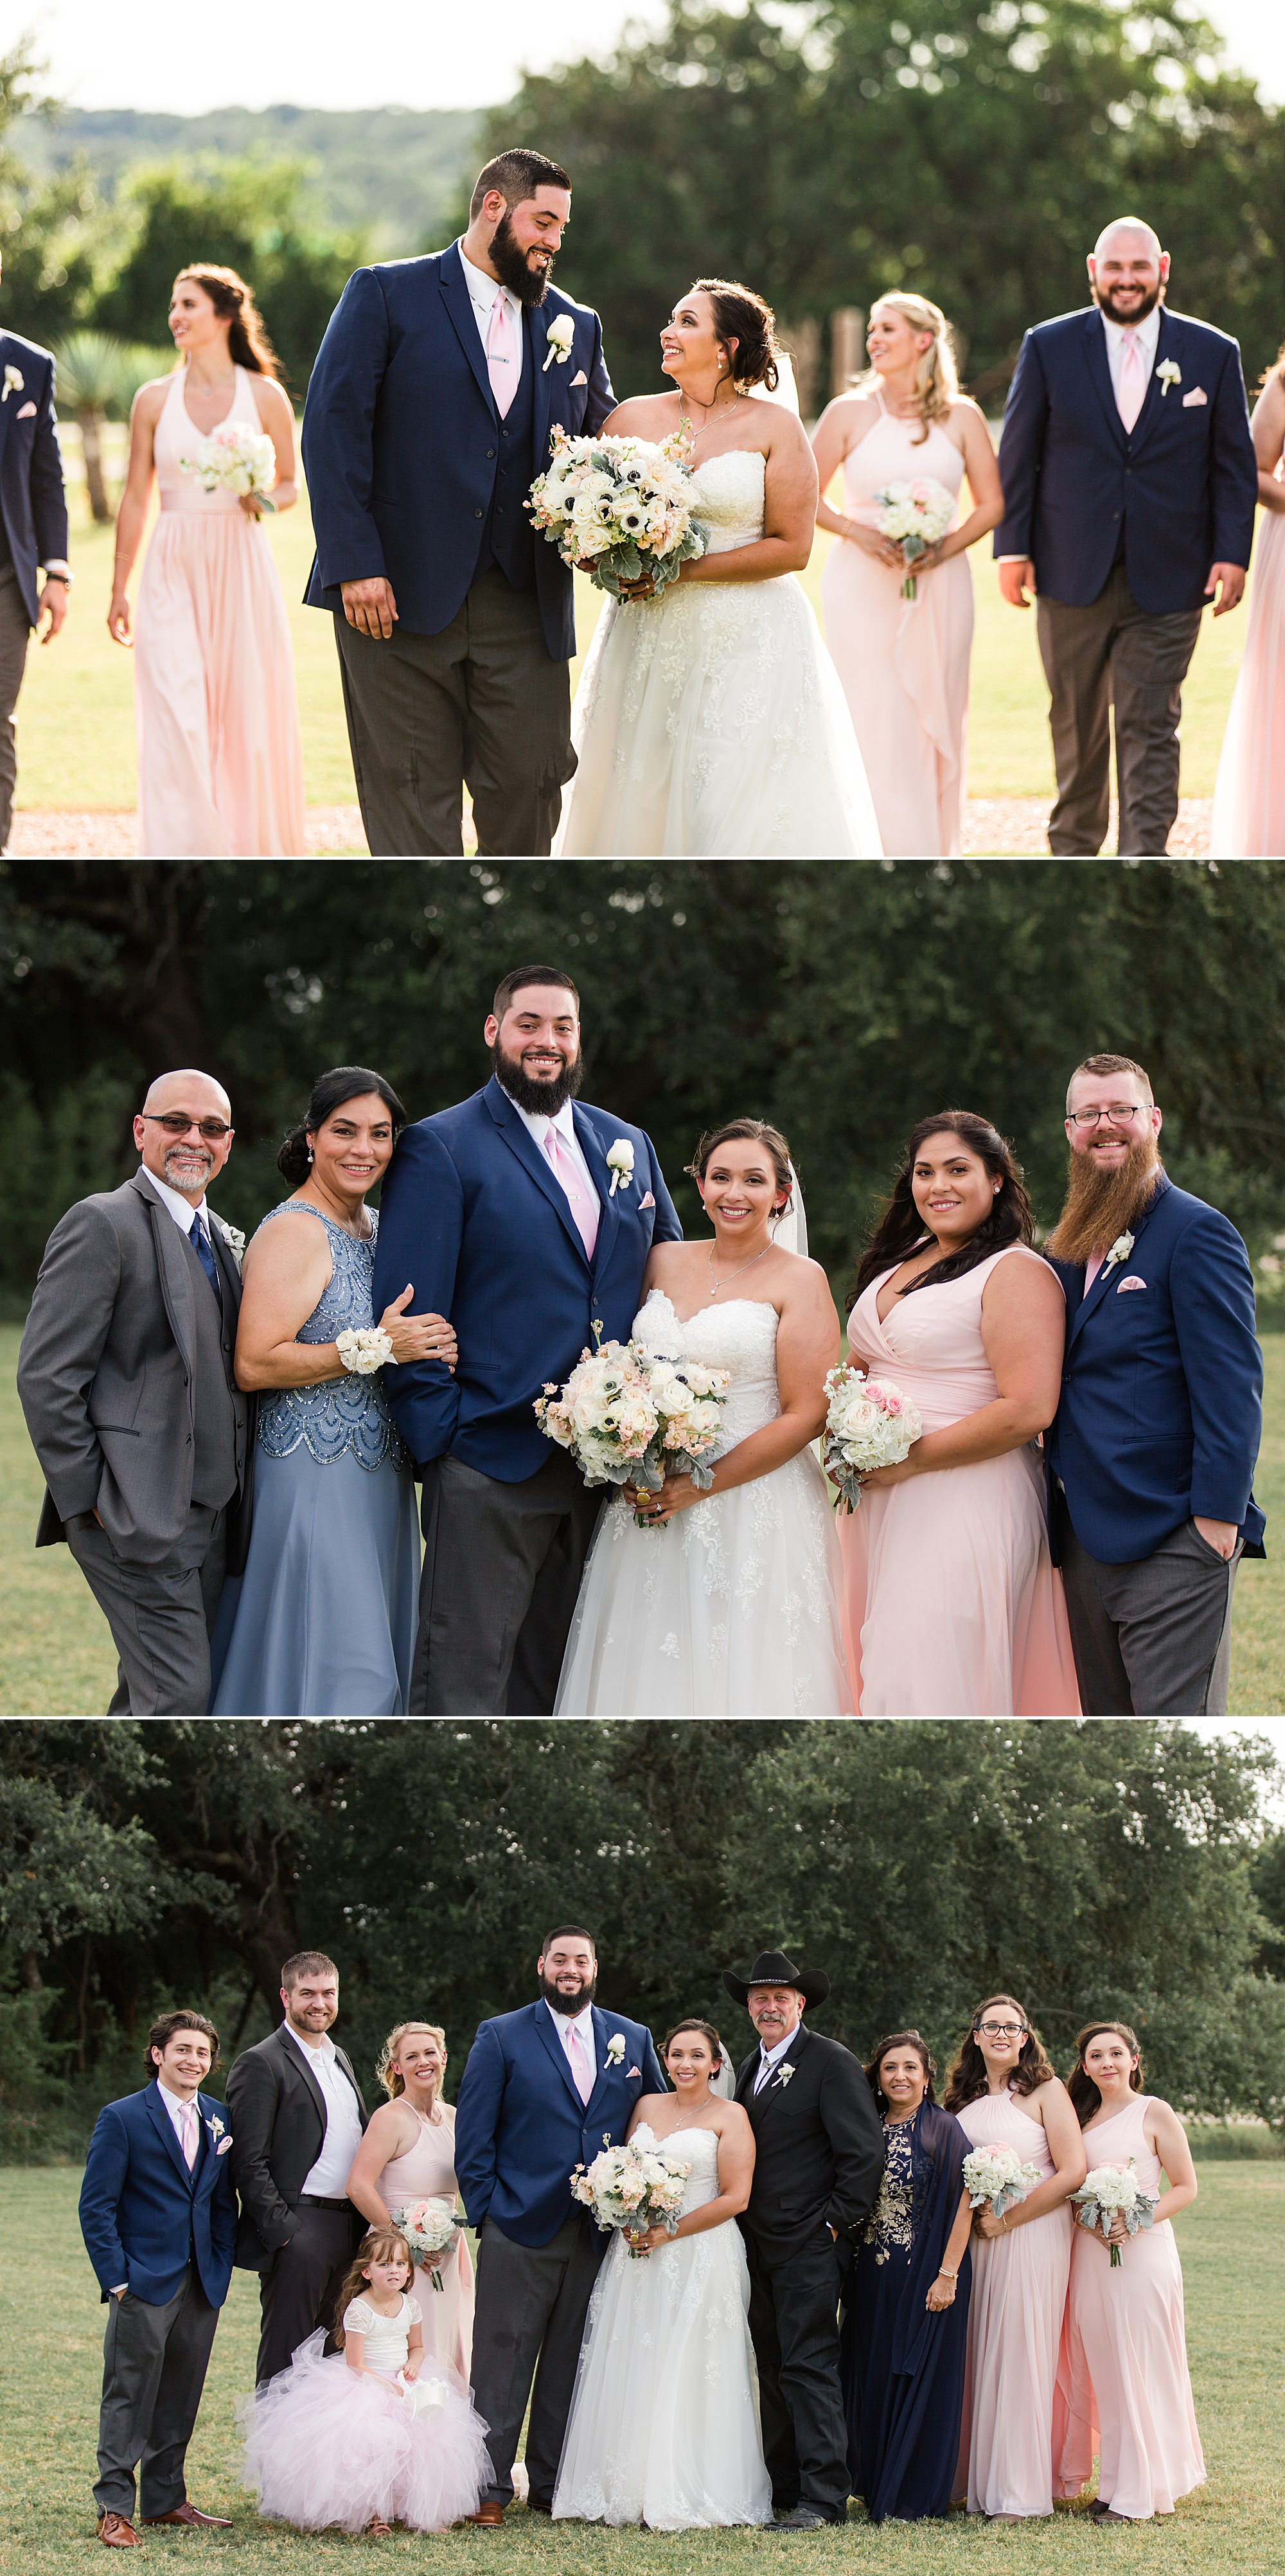 Wedding-Photographer-Bulverde-Texas-Western-Sky-Event-Venue-Carly-Barton-Photography_0035.jpg